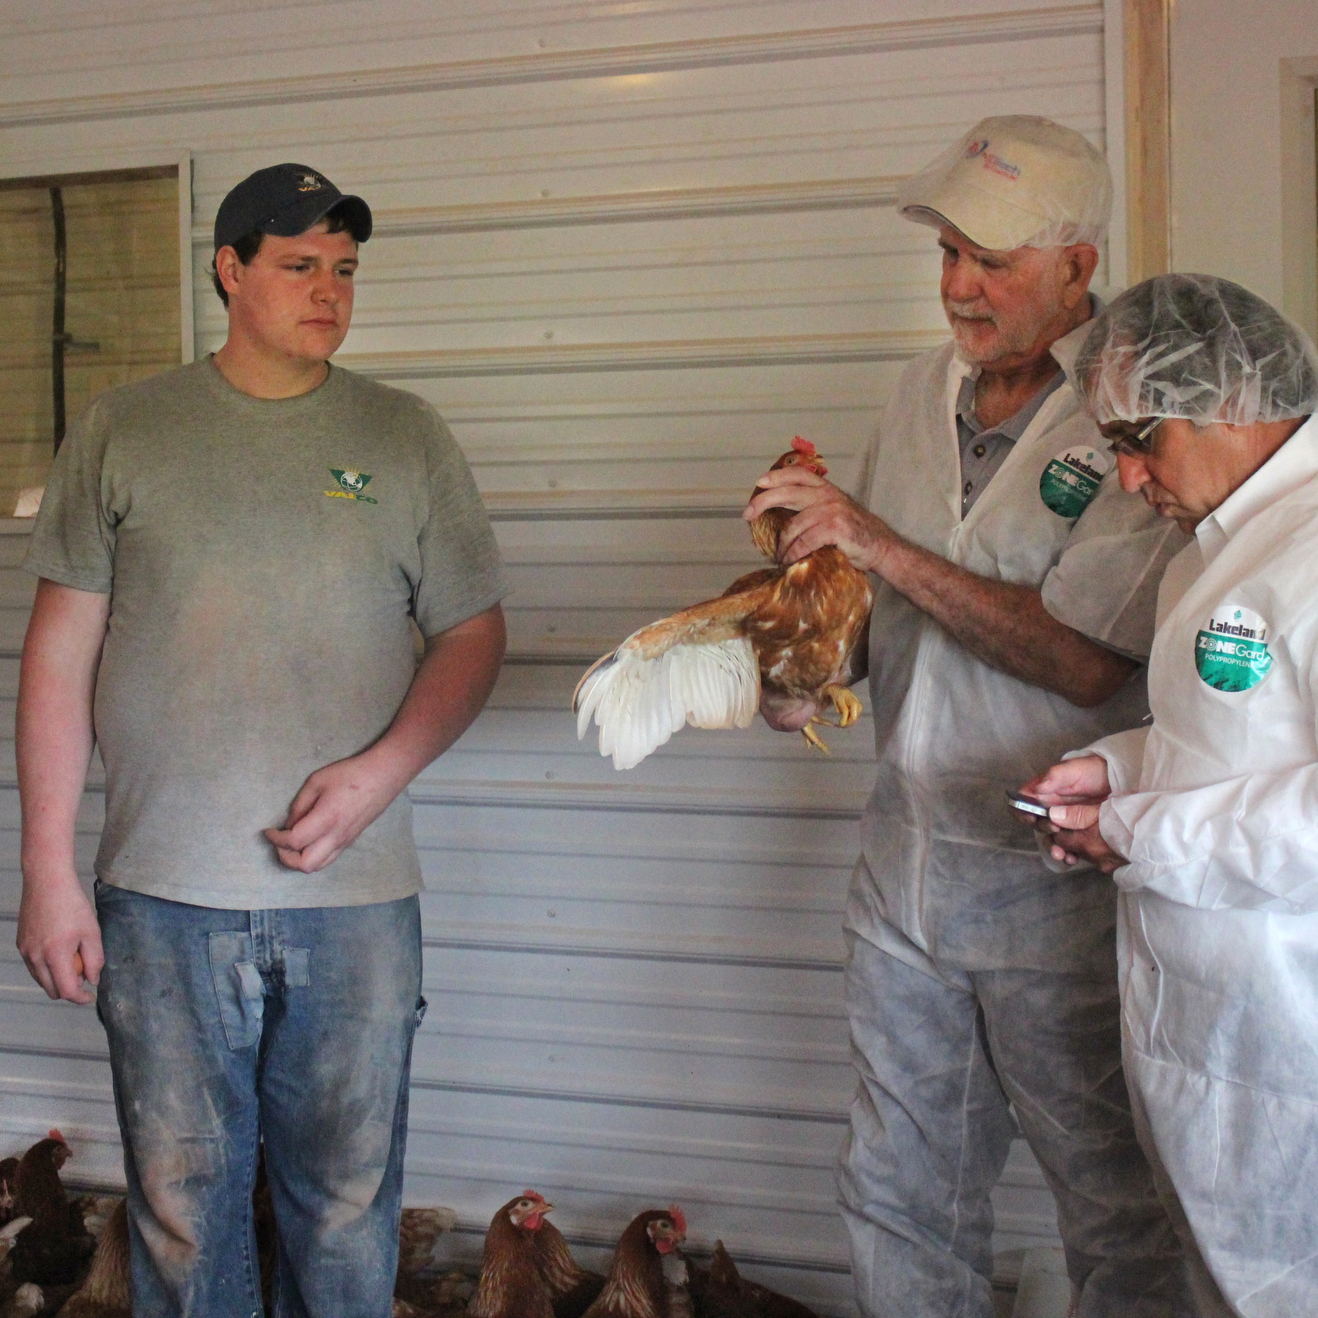 Harold Sensenig (left) is selling his cage-free eggs to Paul Sauder (right).  Denny Williamson (center, with chicken) works with Powell's Feed Service, which supplies chickens to Sensenig's farm.